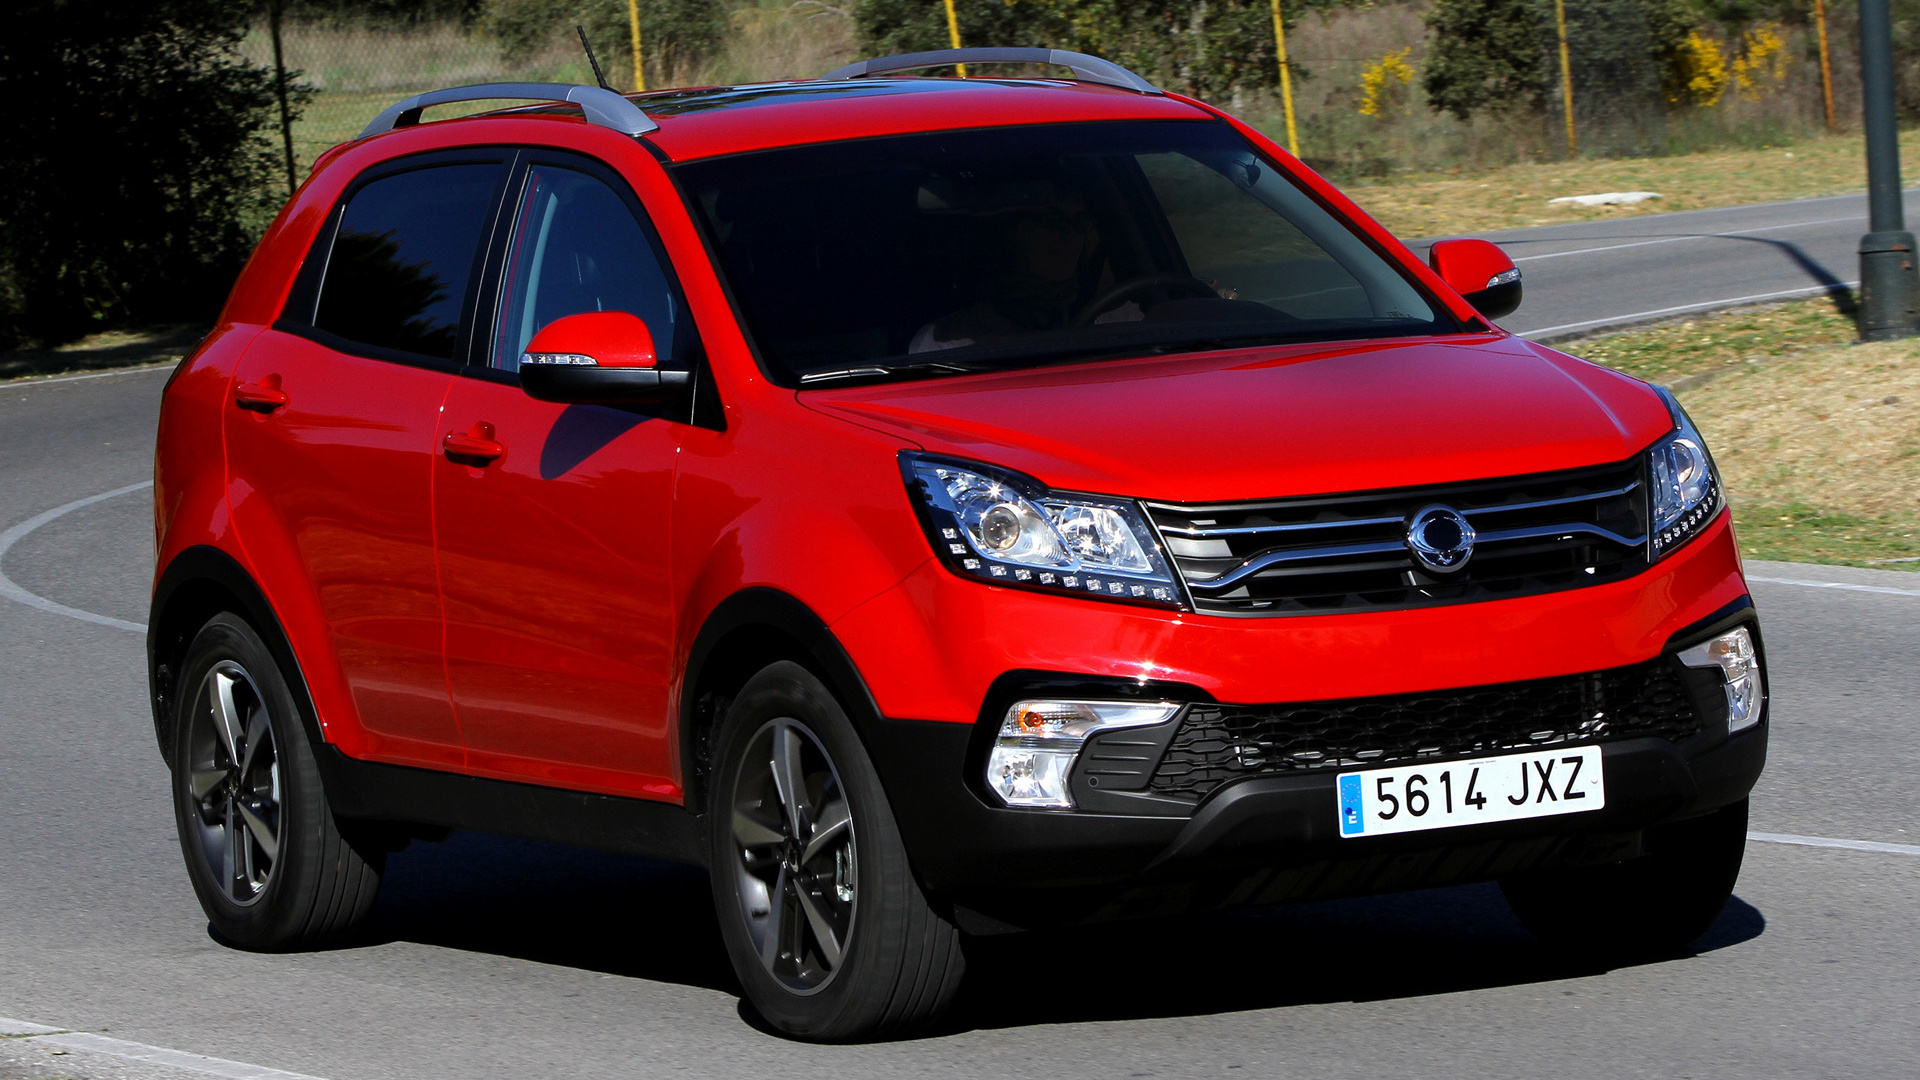 ssangyong korando 2017 wallpapers and hd images car pixel. Black Bedroom Furniture Sets. Home Design Ideas